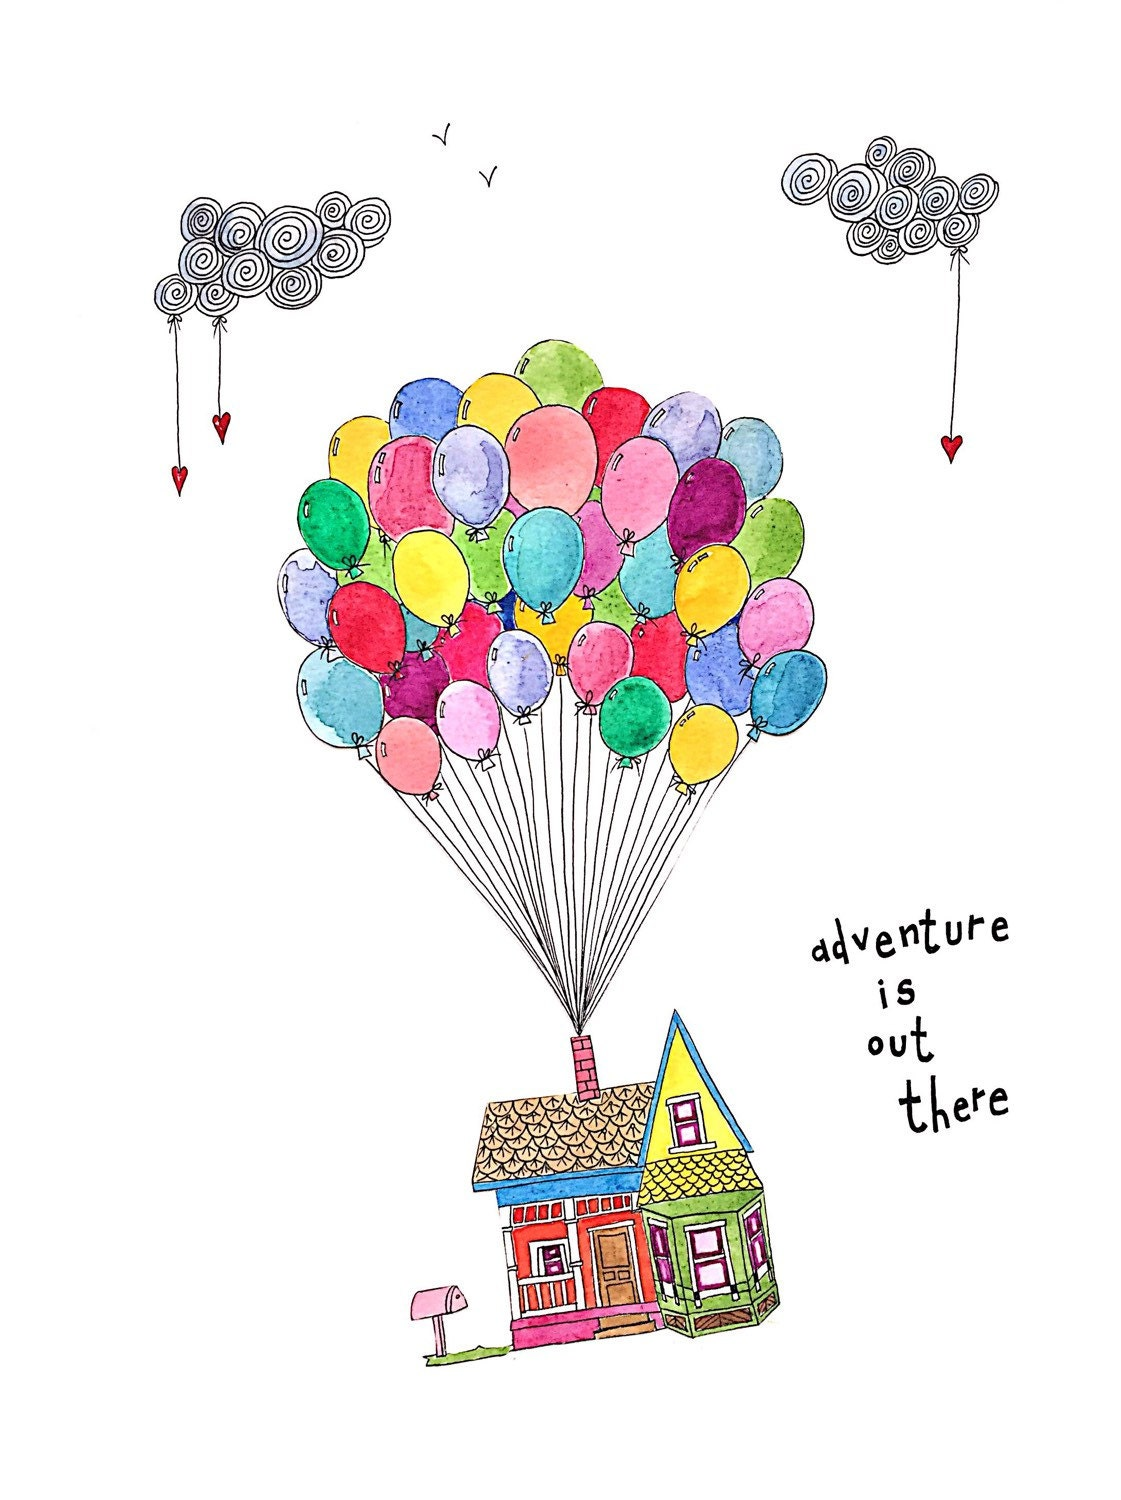 Up Balloon House Drawing | www.imgkid.com - The Image Kid ...